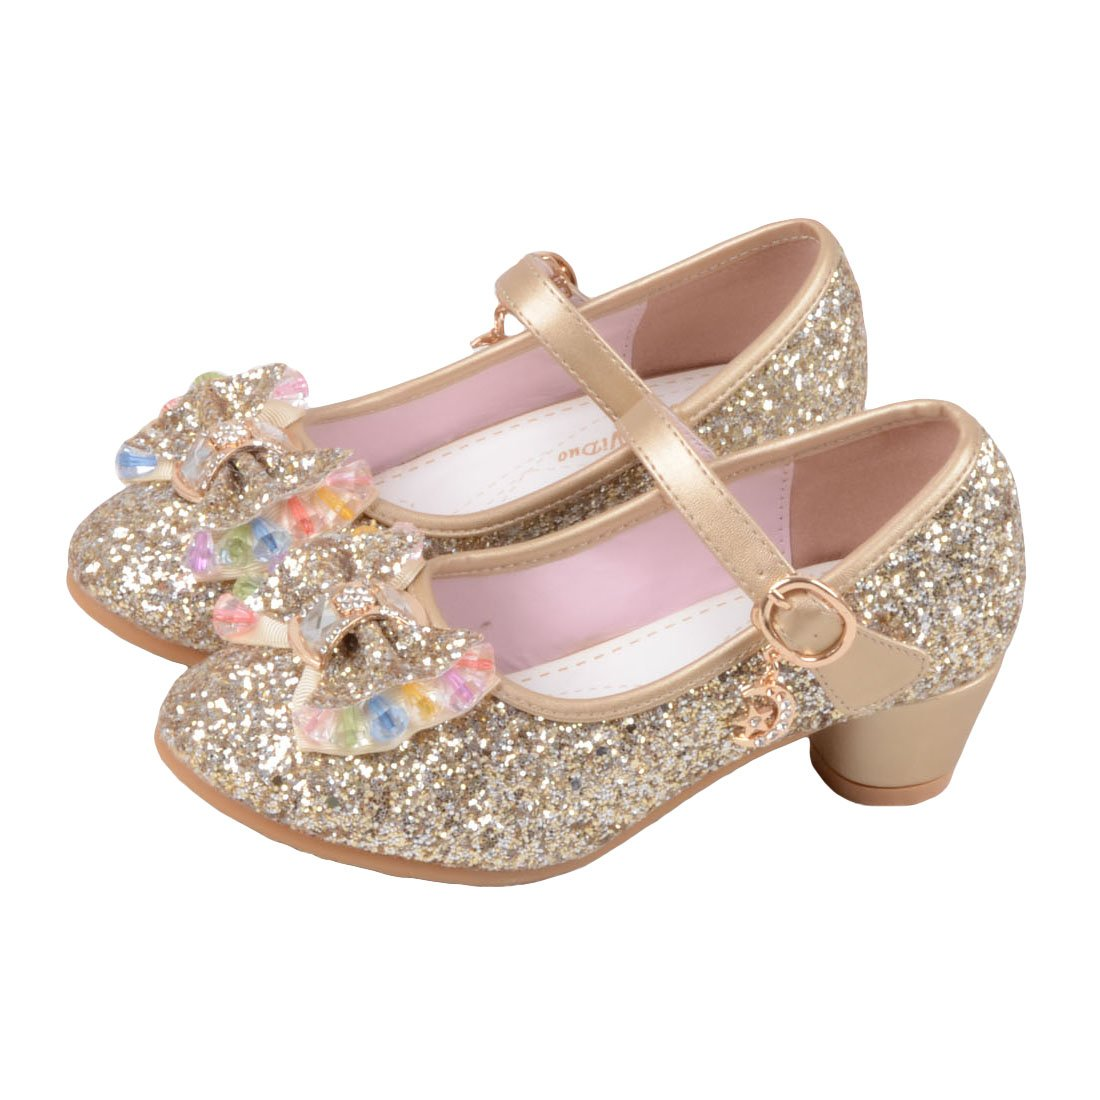 O&N Kids Girls Mary Jane Wedding Party Shoes Glitter Bridesmaids Low Heels Princess Dress Shoes